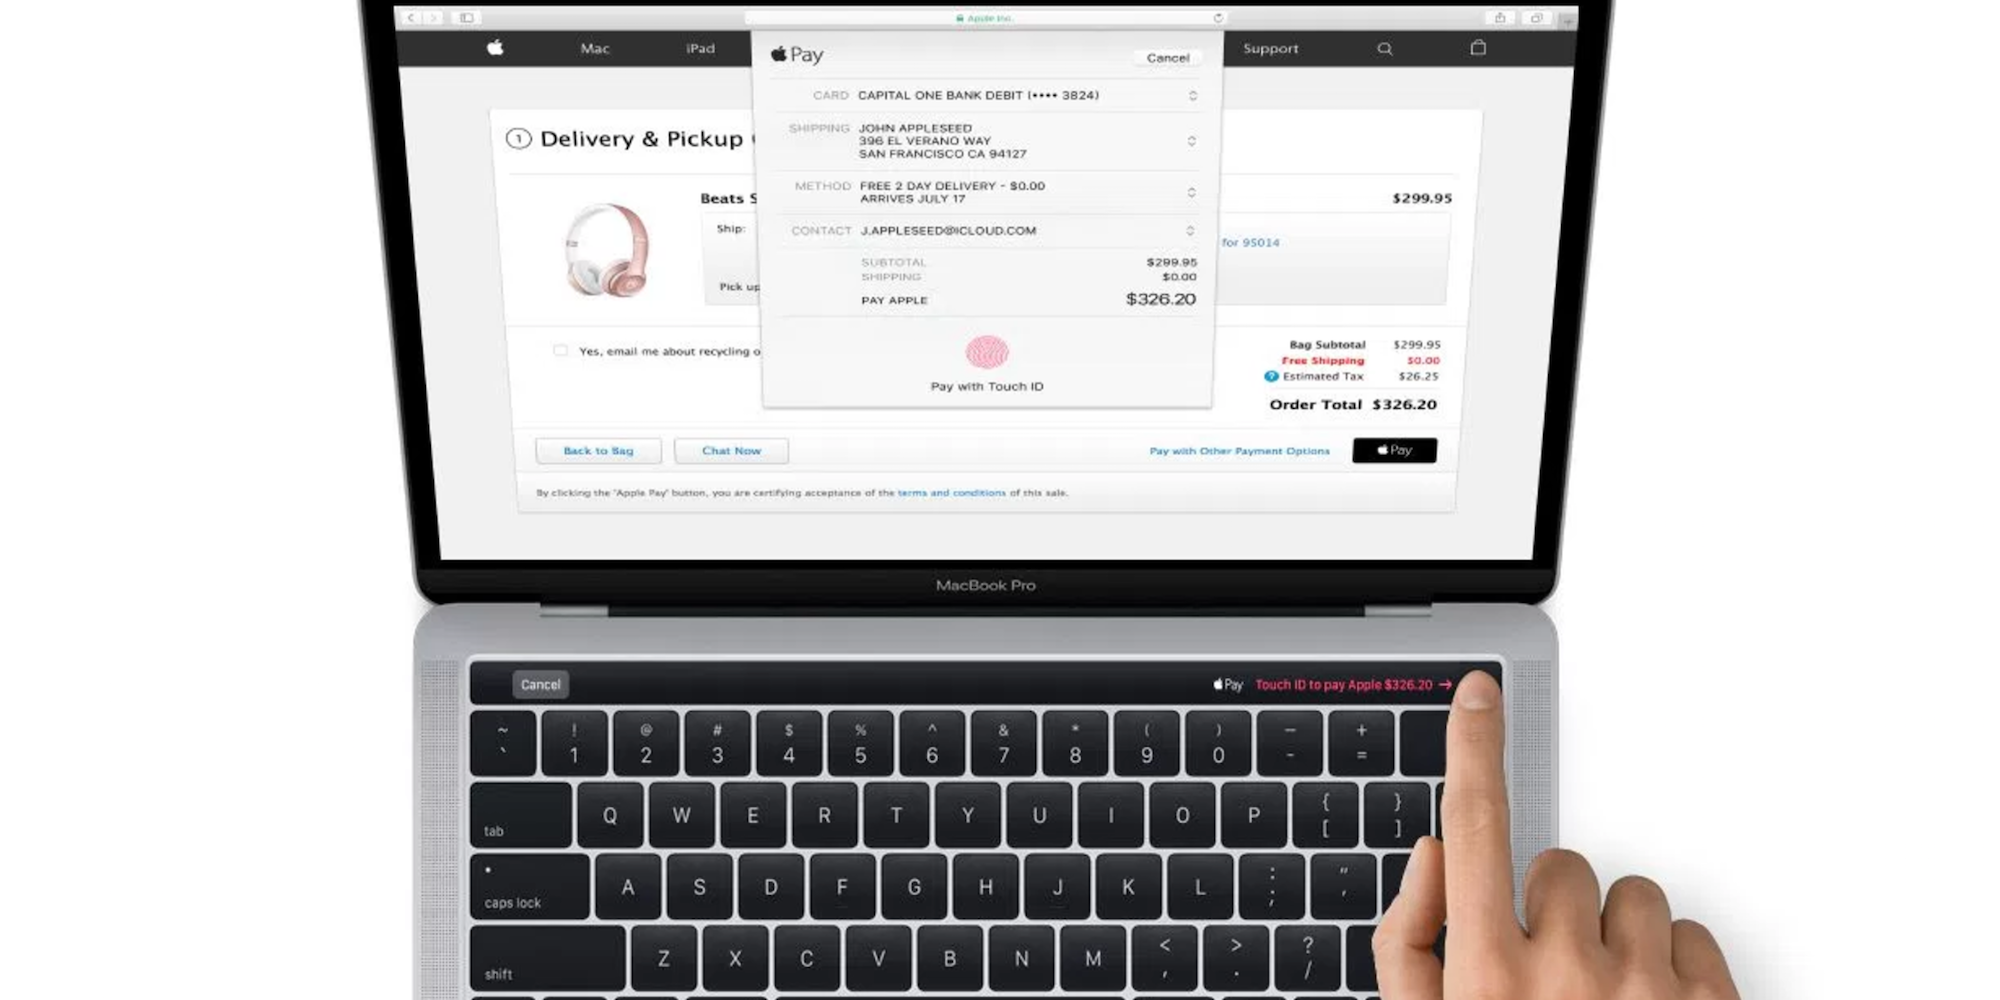 macbook-pro-touch-id-apple-pay